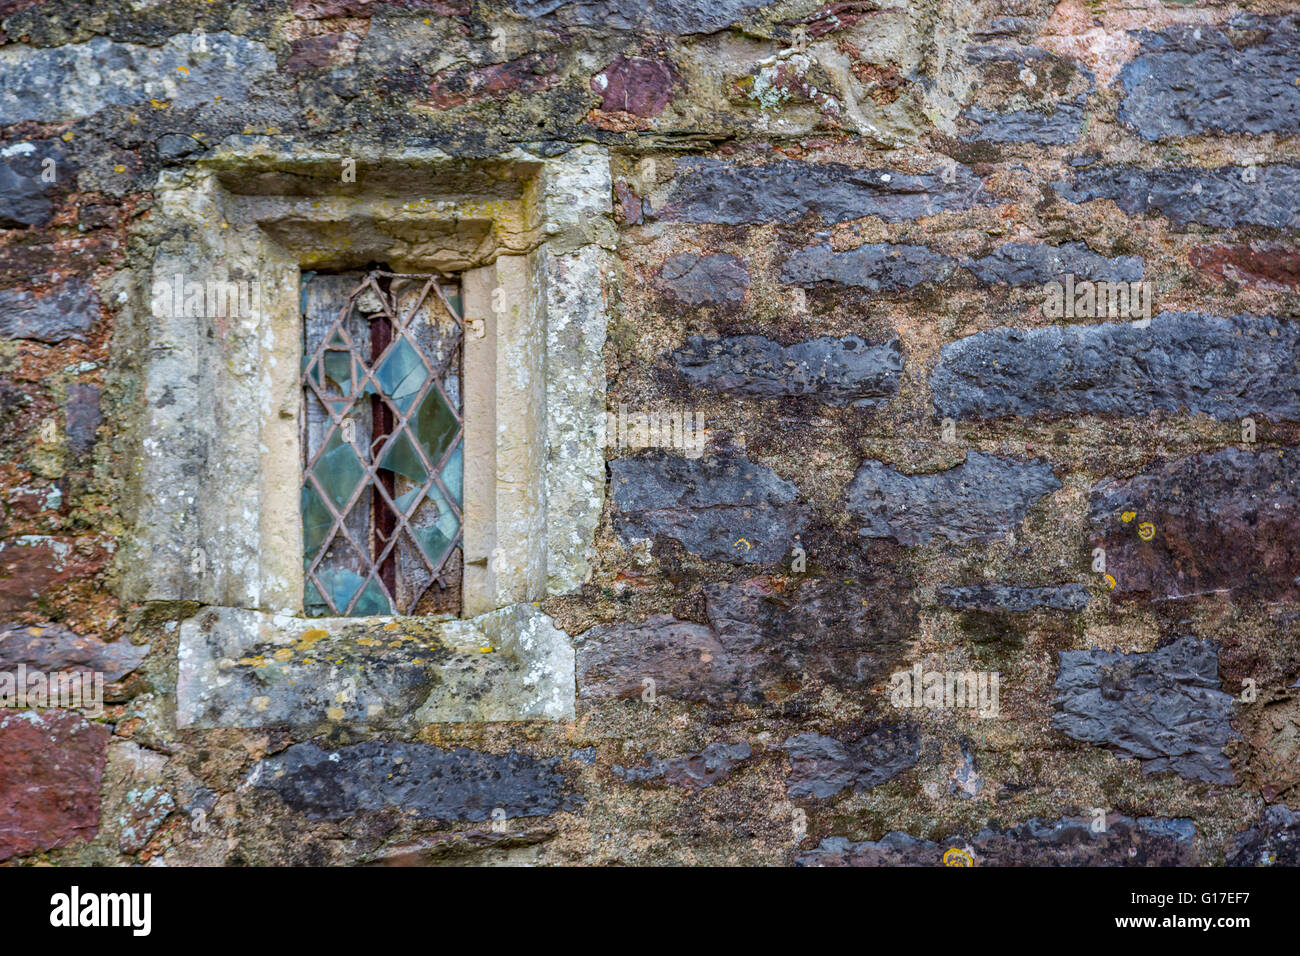 A old stone church window with stained glass and lead work in Cockington Village Church, Torquay, Devon, UK - Stock Image